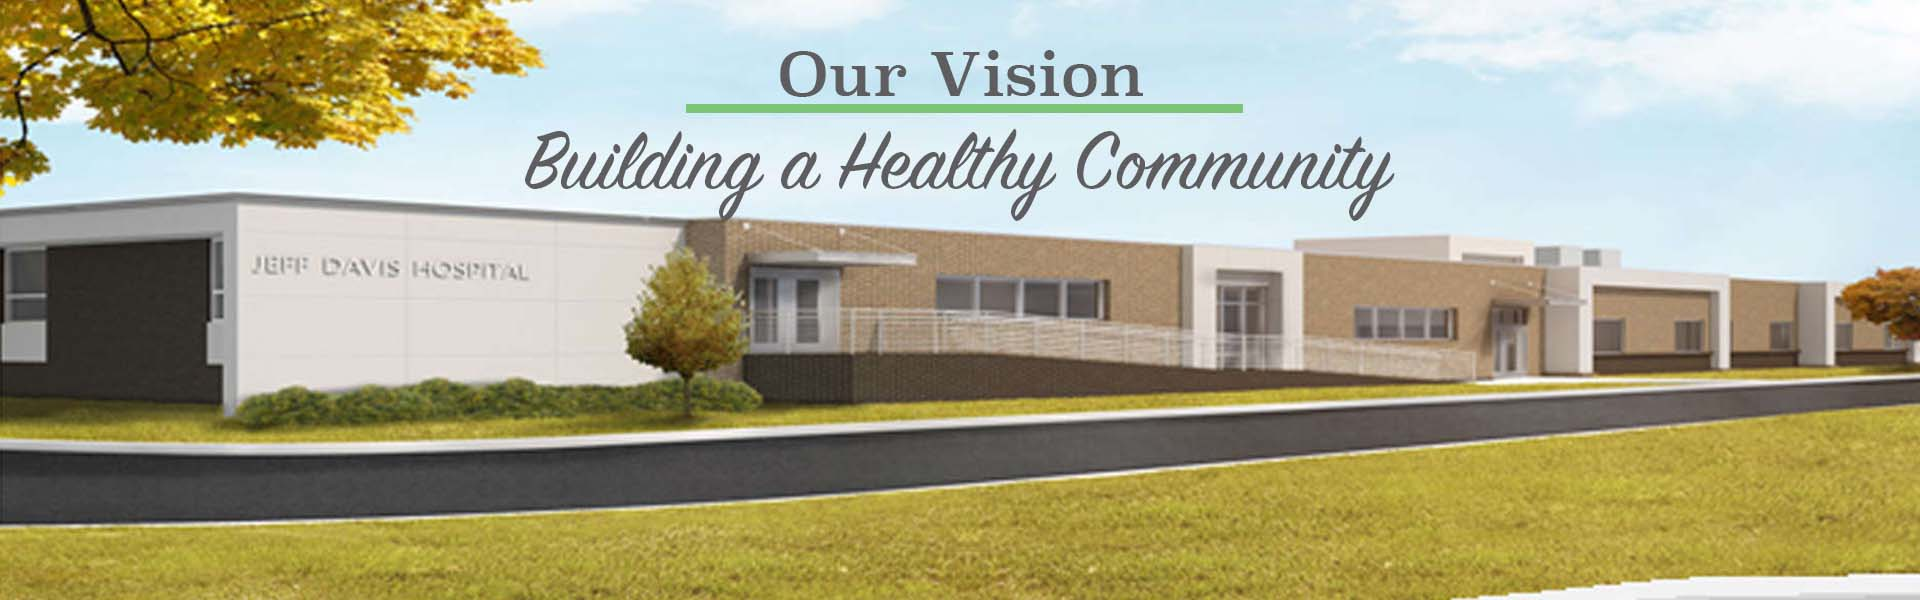 front of hospital Our vision building a healthy community